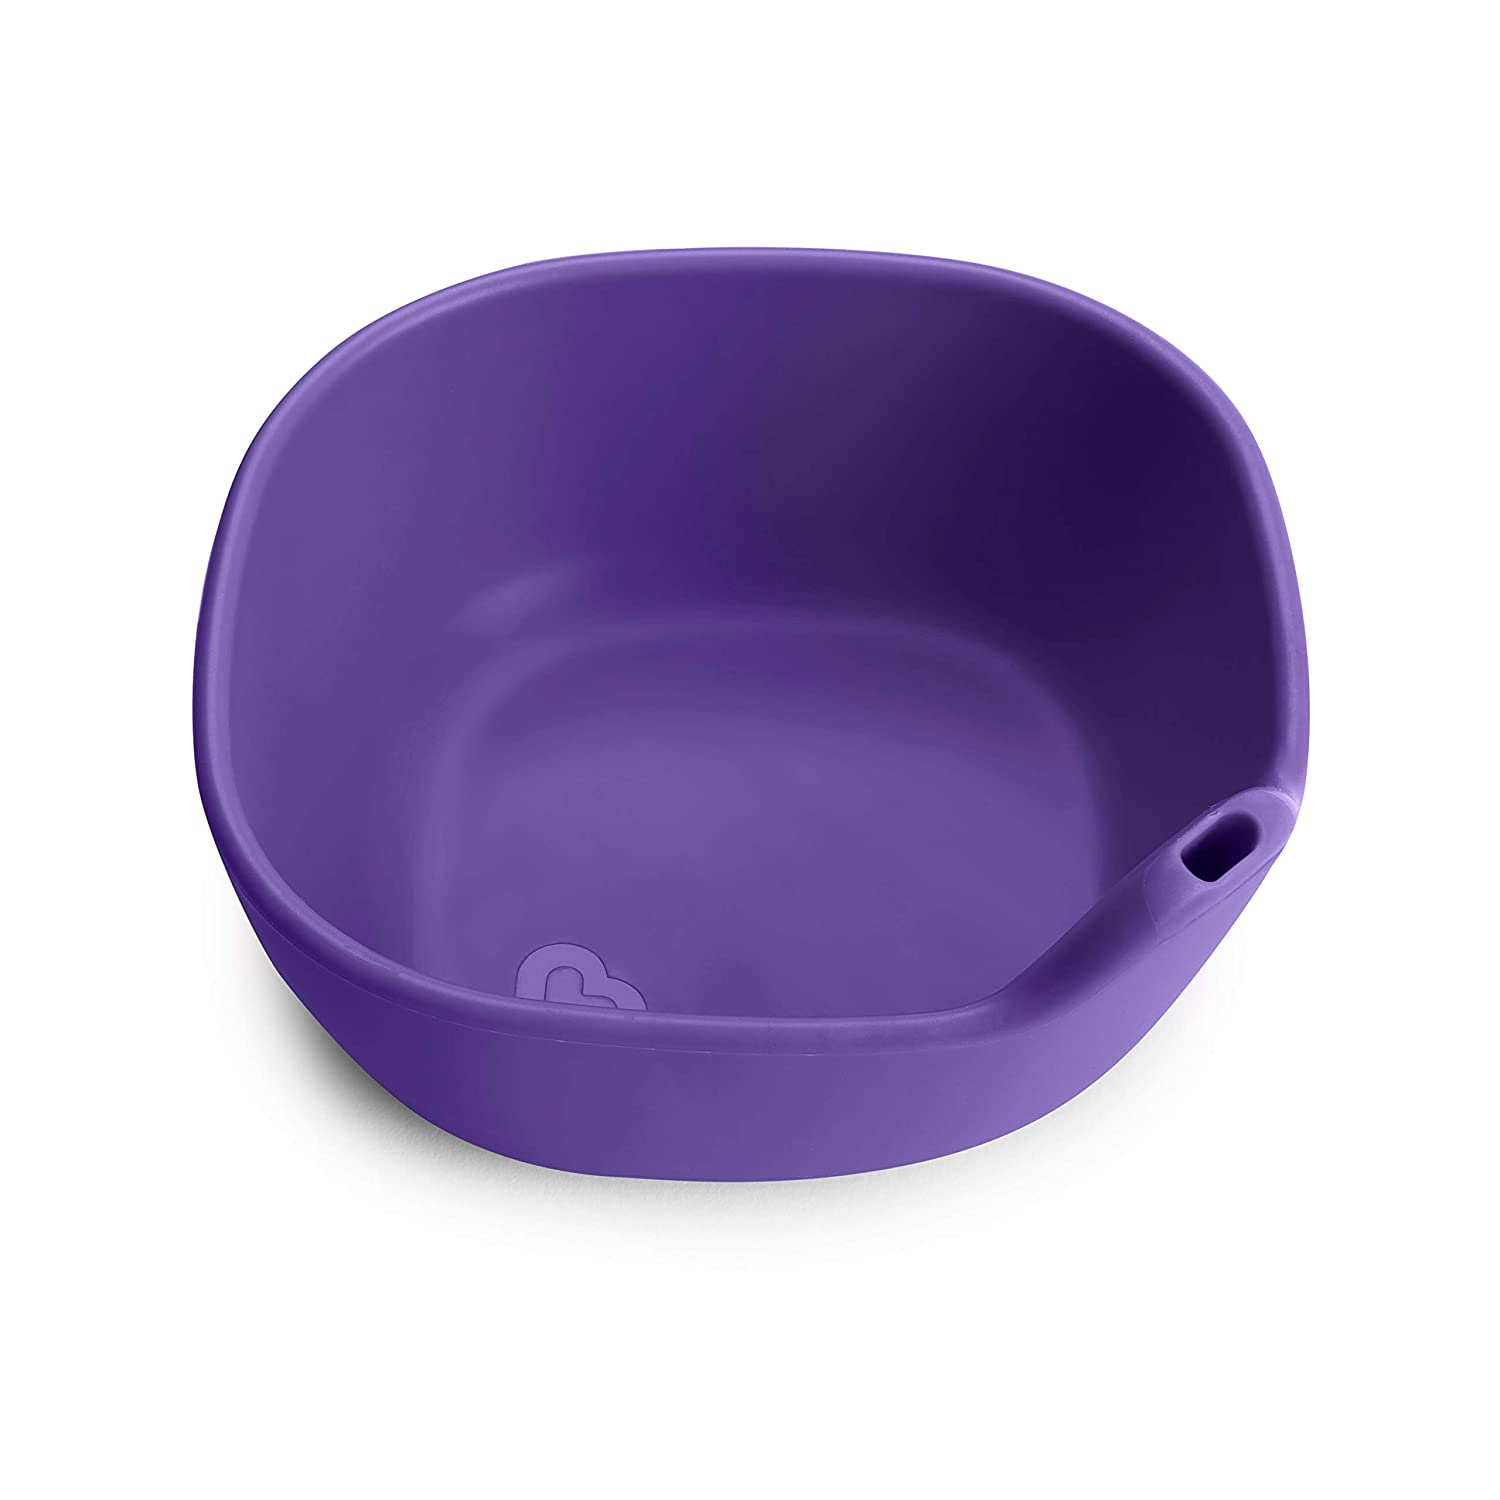 Munchkin Last Drop Silicone Toddler Bowl with Built-In Straw, Purple